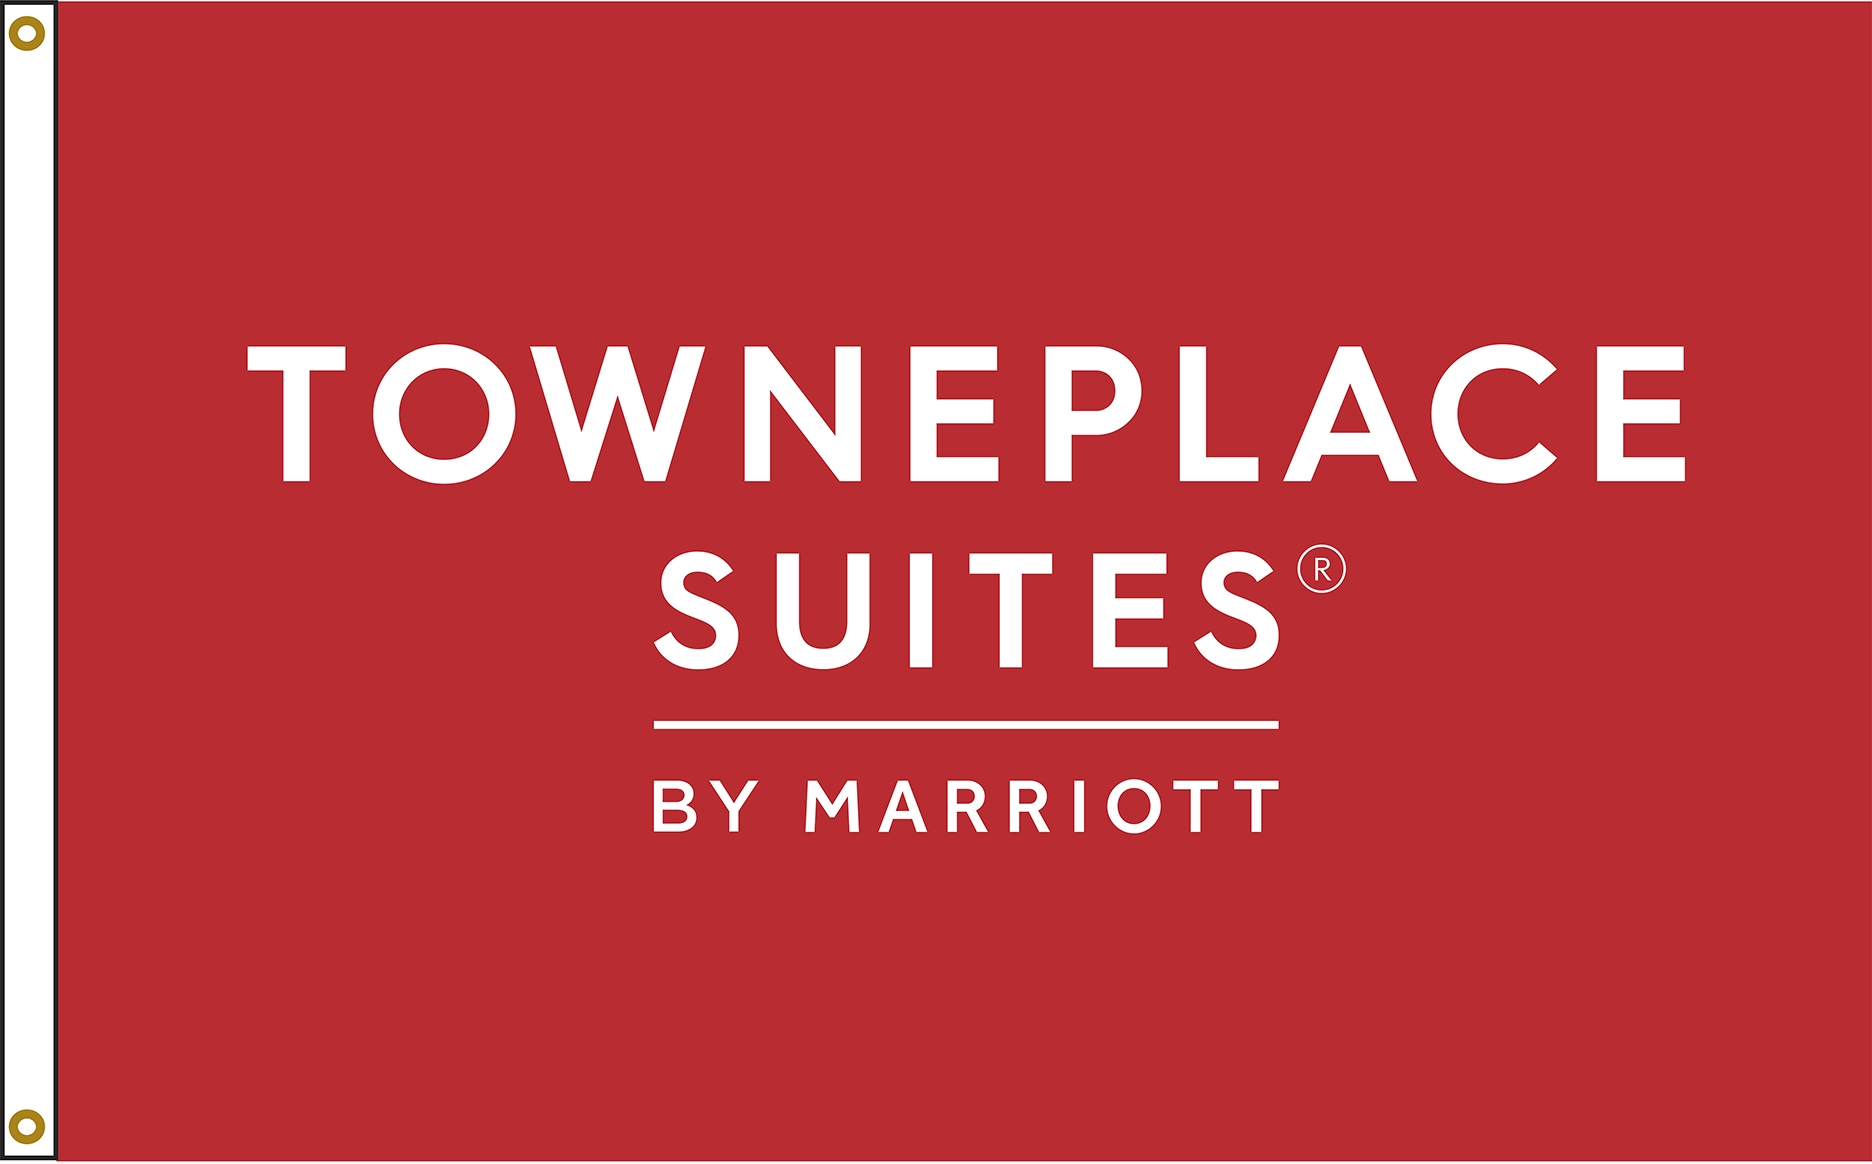 Town Place Suites Flag